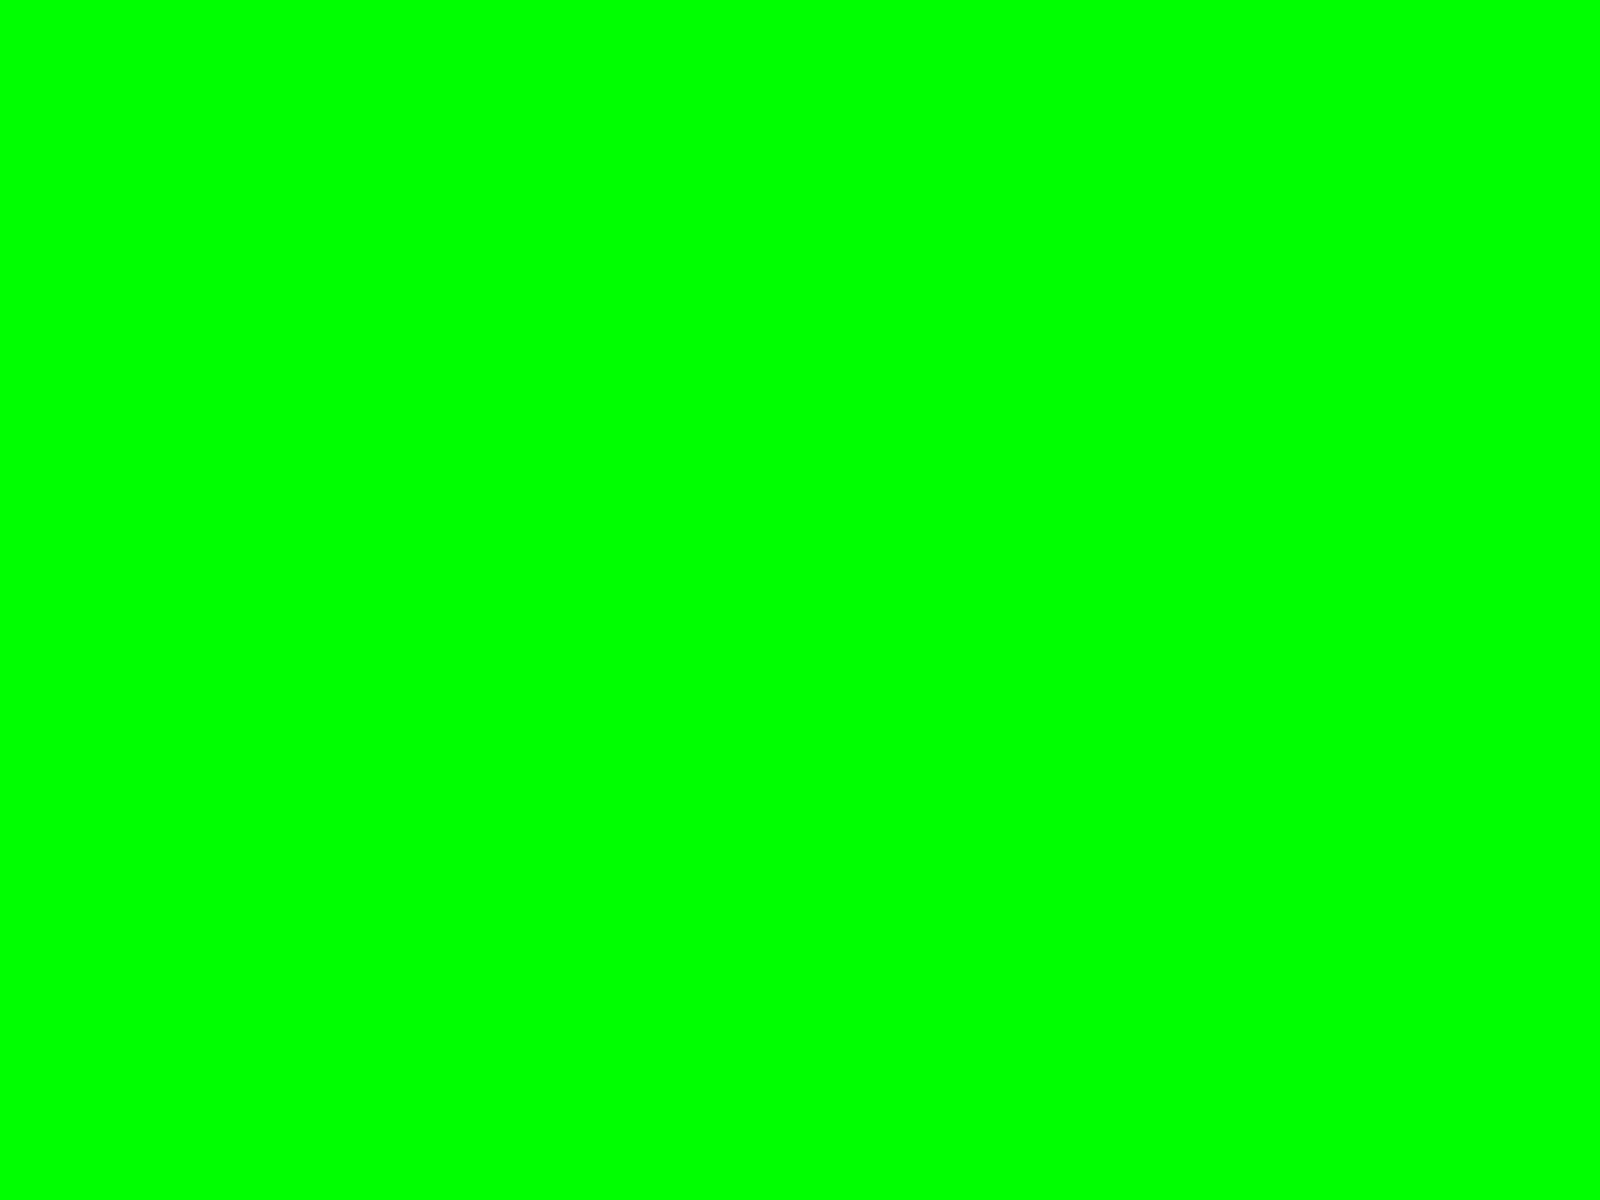 1600x1200 Lime Web Green Solid Color Background